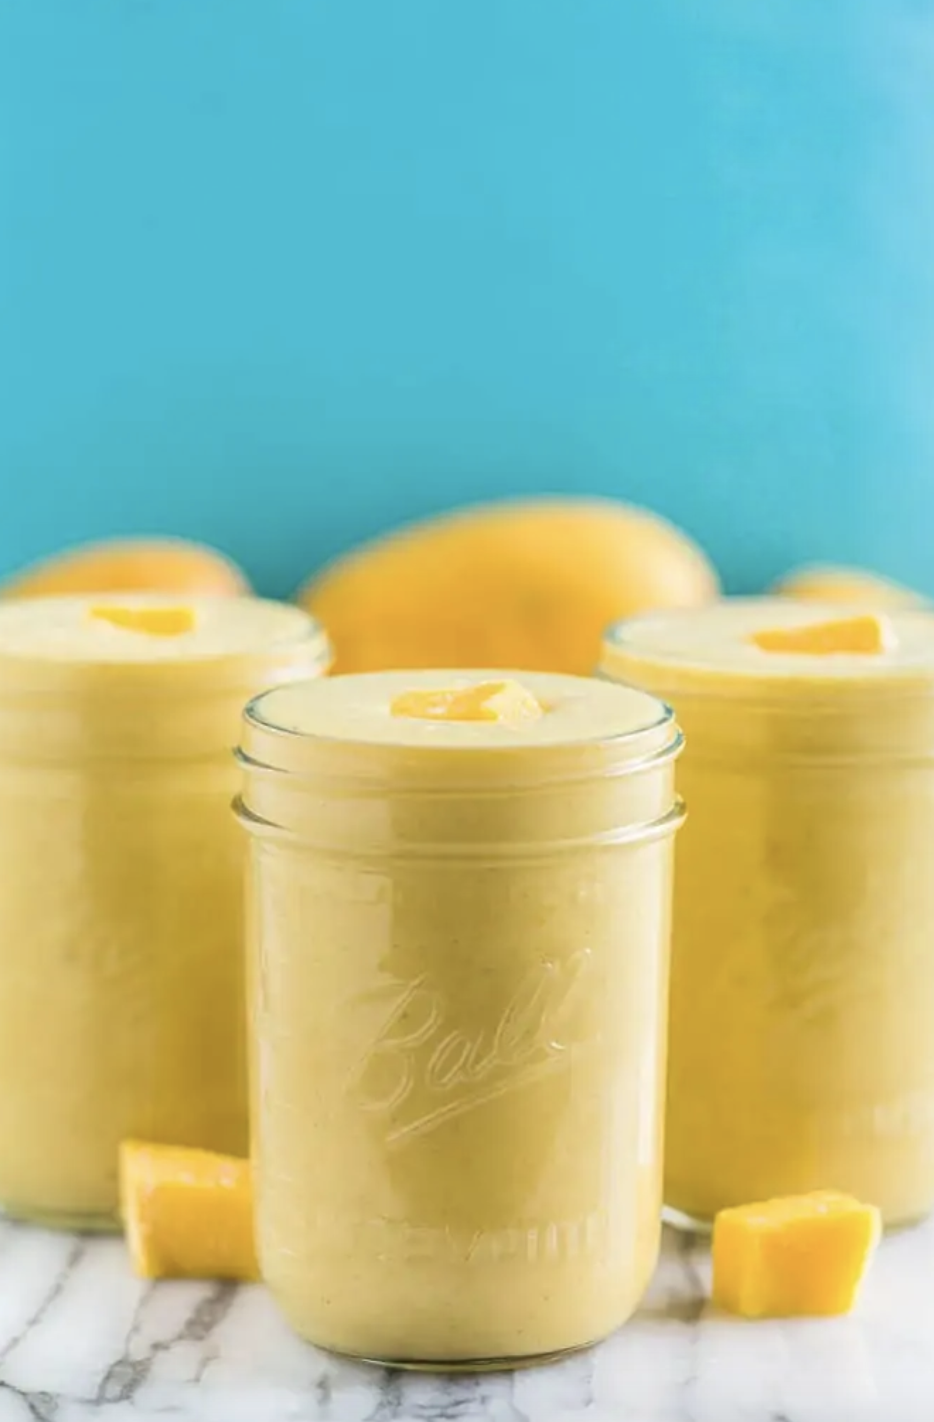 """<p>With ingredients like pineapple, mango chunks, banana, ginger, turmeric, and more, this smoothie will start your day off fruity and bright. Plus, it looks super pretty in the jar. </p><p><a class=""""link rapid-noclick-resp"""" href=""""https://getinspiredeveryday.com/food/golden-milk-tropical-turmeric-smoothie/"""" rel=""""nofollow noopener"""" target=""""_blank"""" data-ylk=""""slk:Get the recipe"""">Get the recipe</a></p>"""